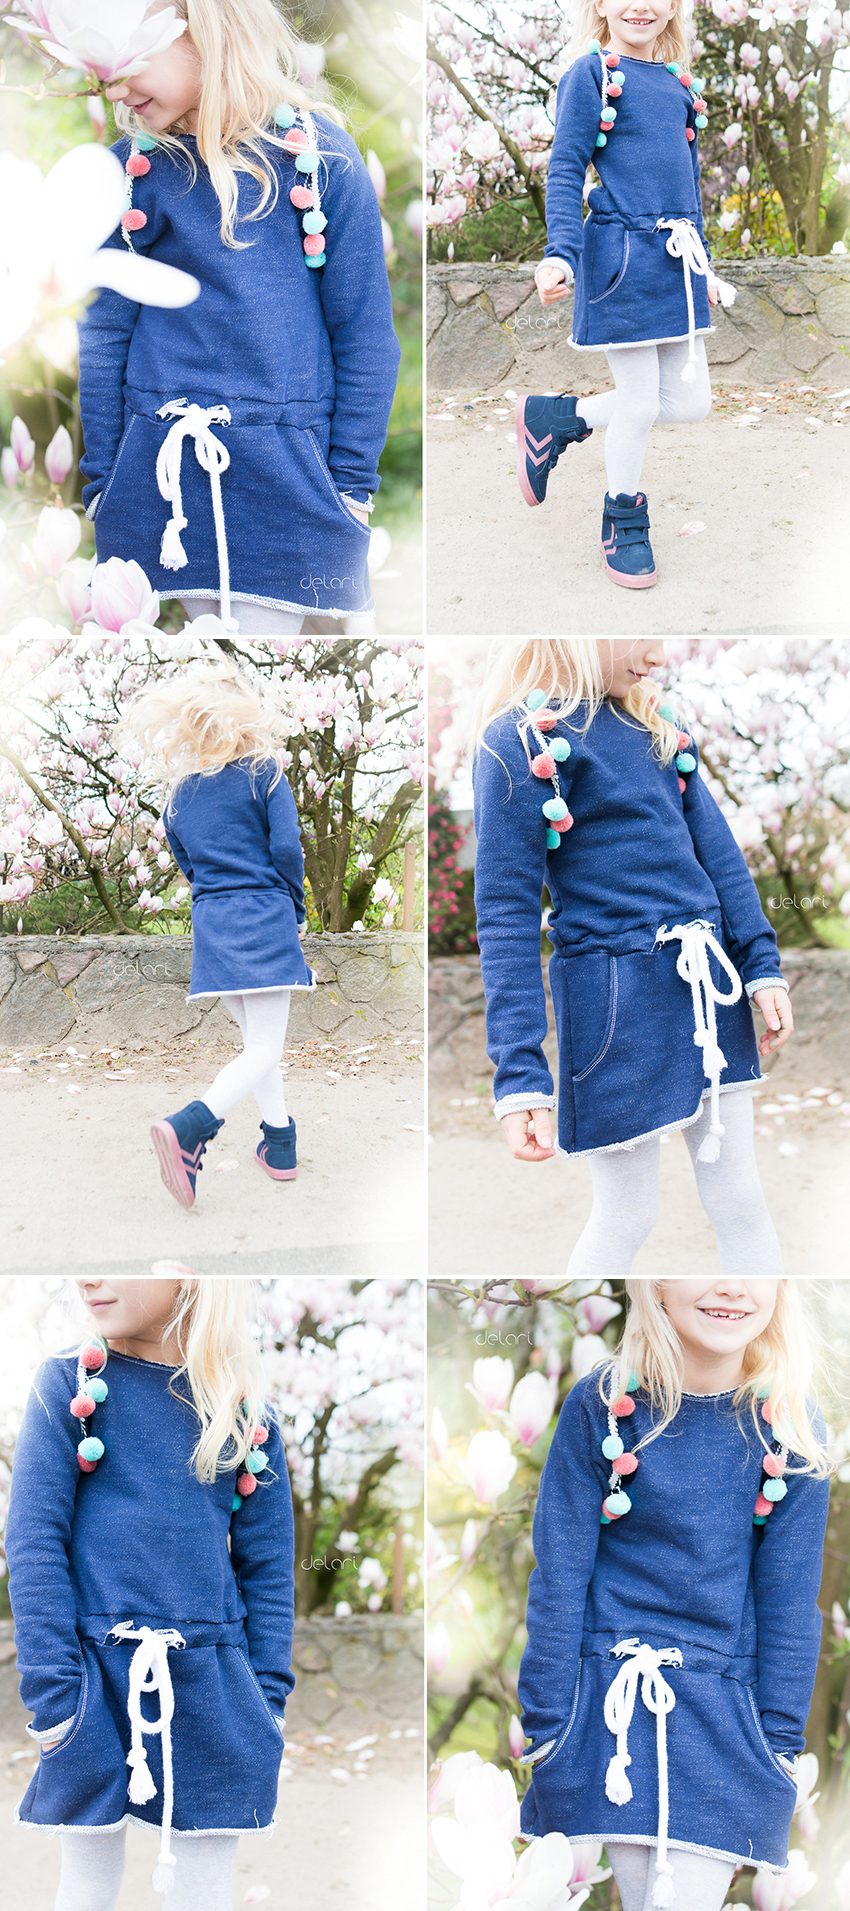 Nähen Kinder DIY Schnittmuster Kidsfashion Sweatdress